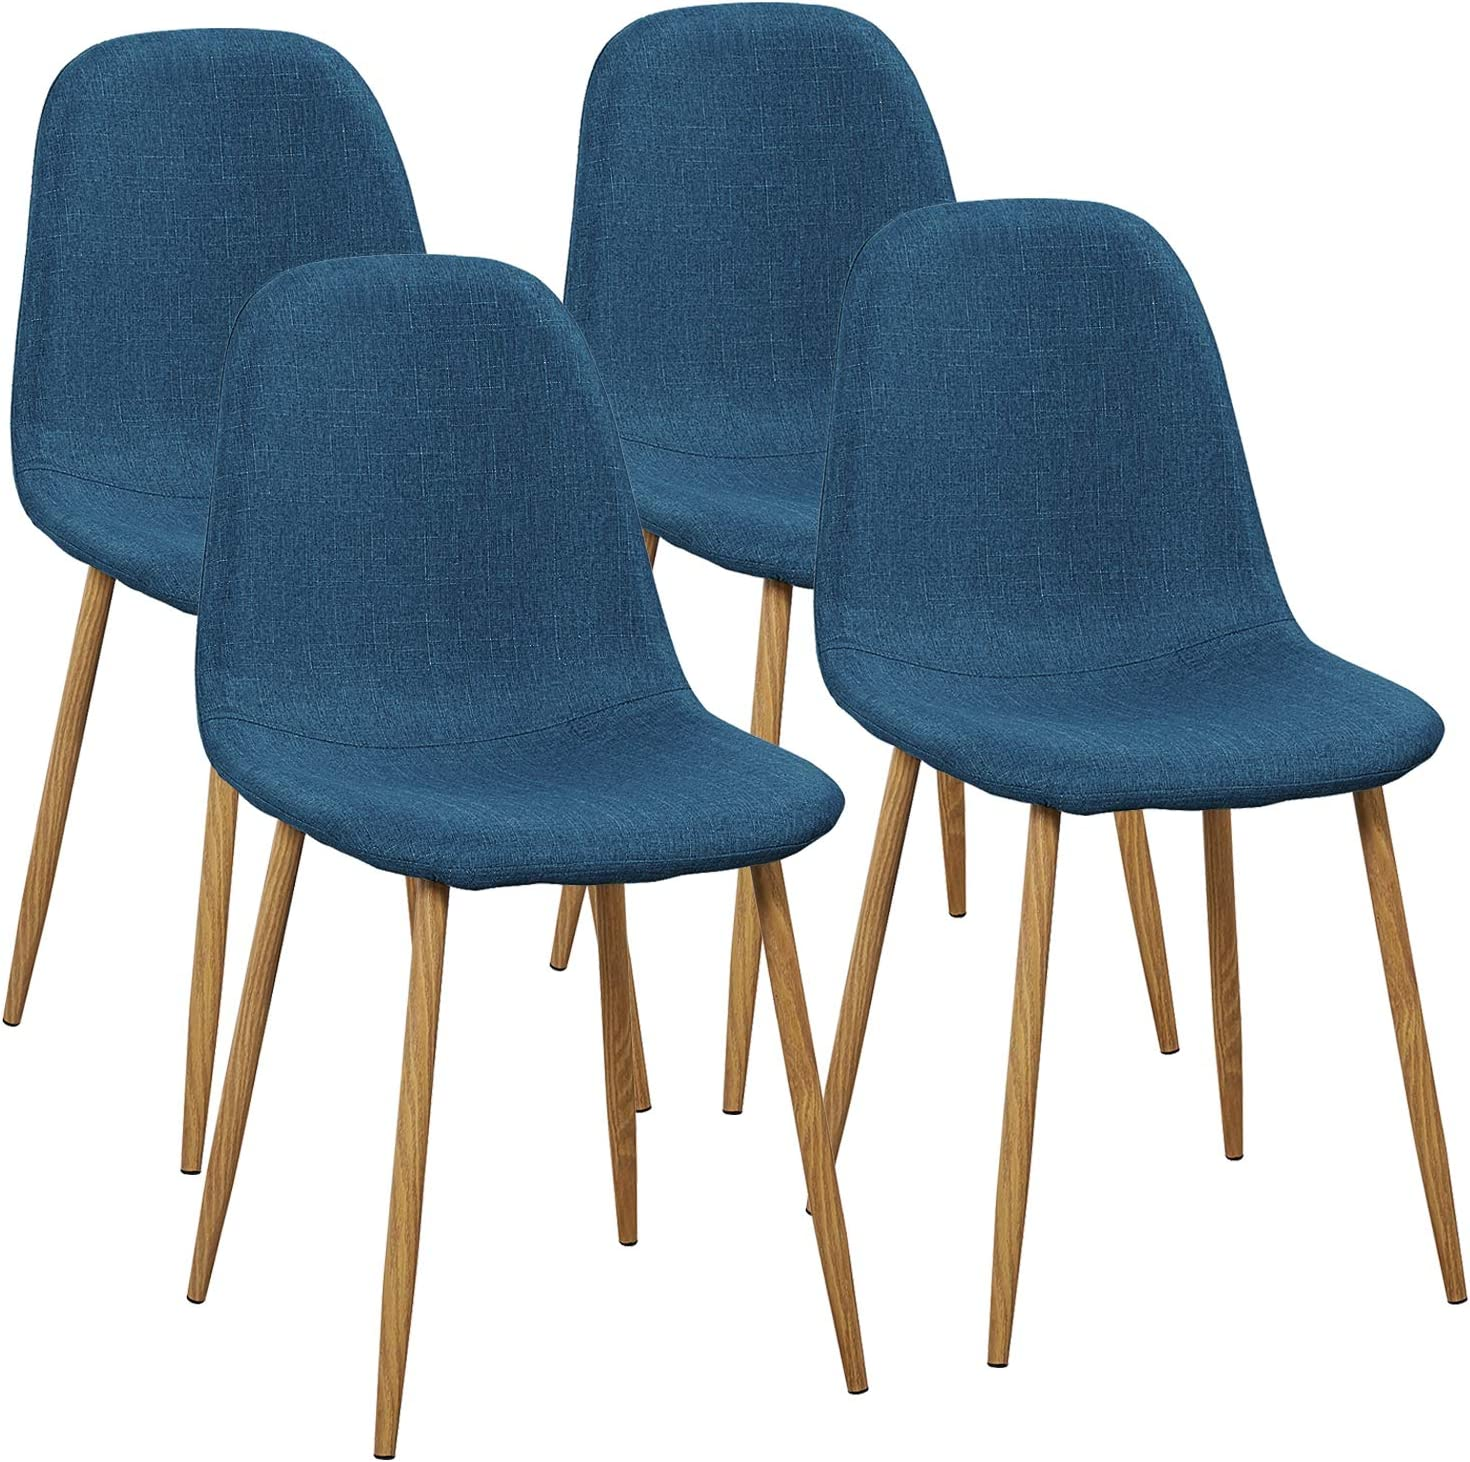 Set of 4 Blue VECELO Chairs for Kitchen//Dining//Living//Lounge Room Fabric Cushion Seat Back Sturdy Metal Legs